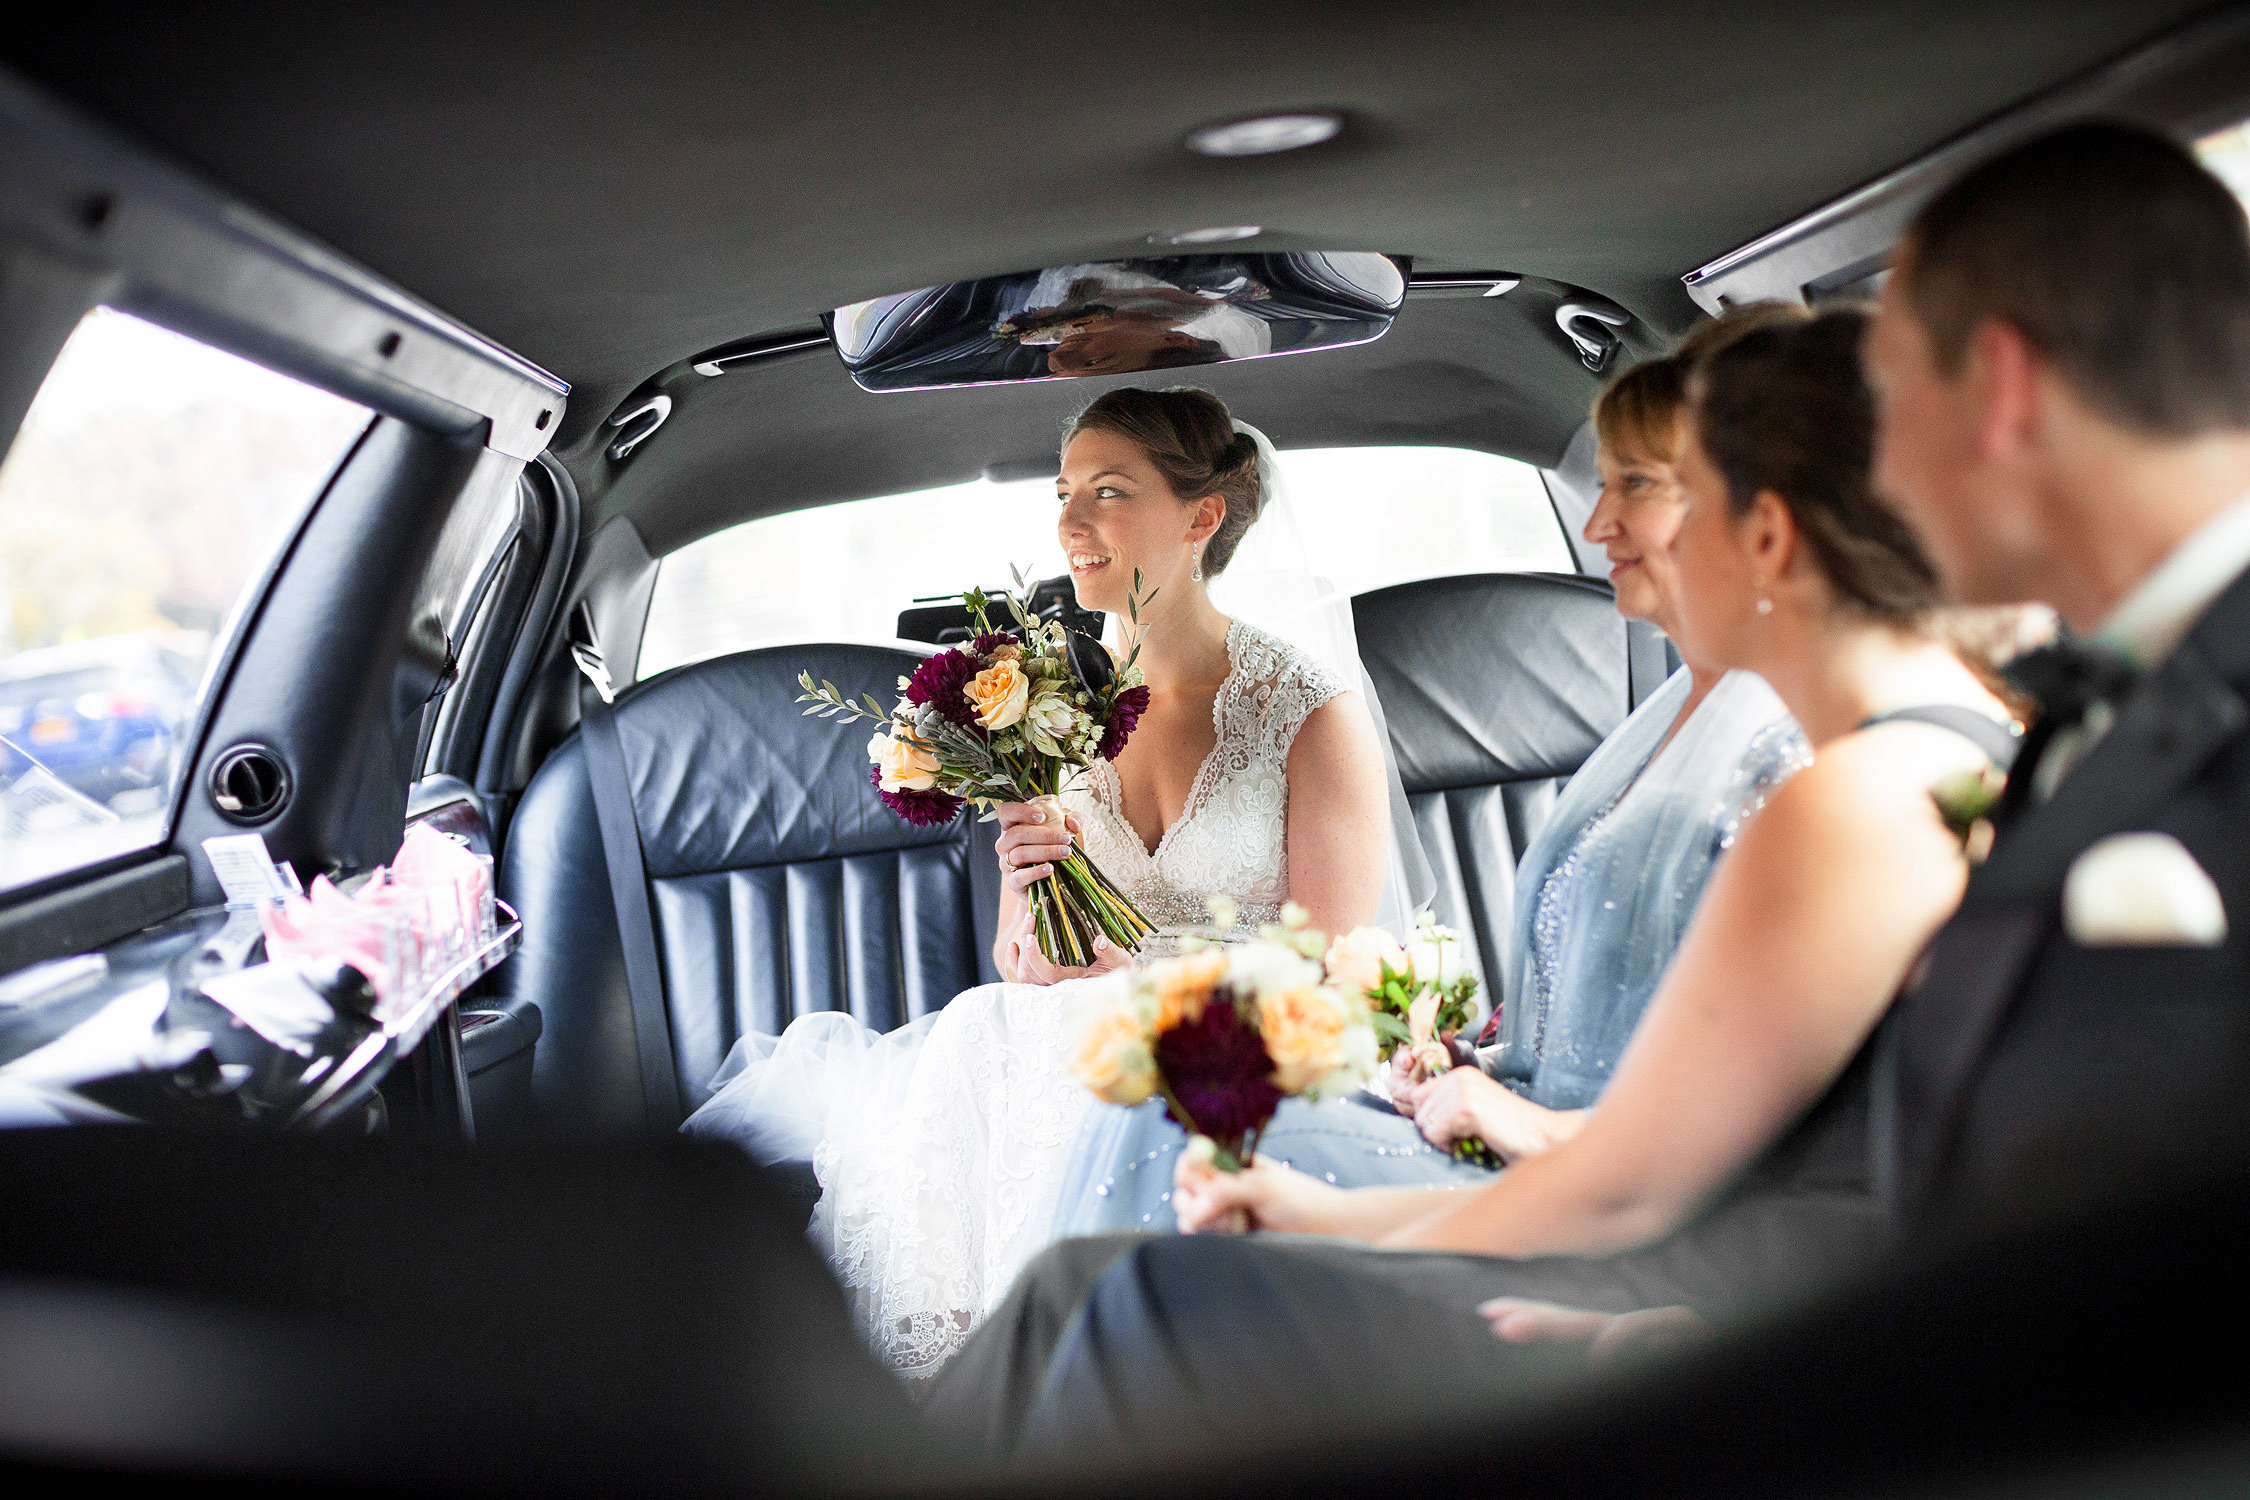 A bride waits in the limo before a church ceremony on Burlington Vermont in a photo by wedding photographer Stina Booth